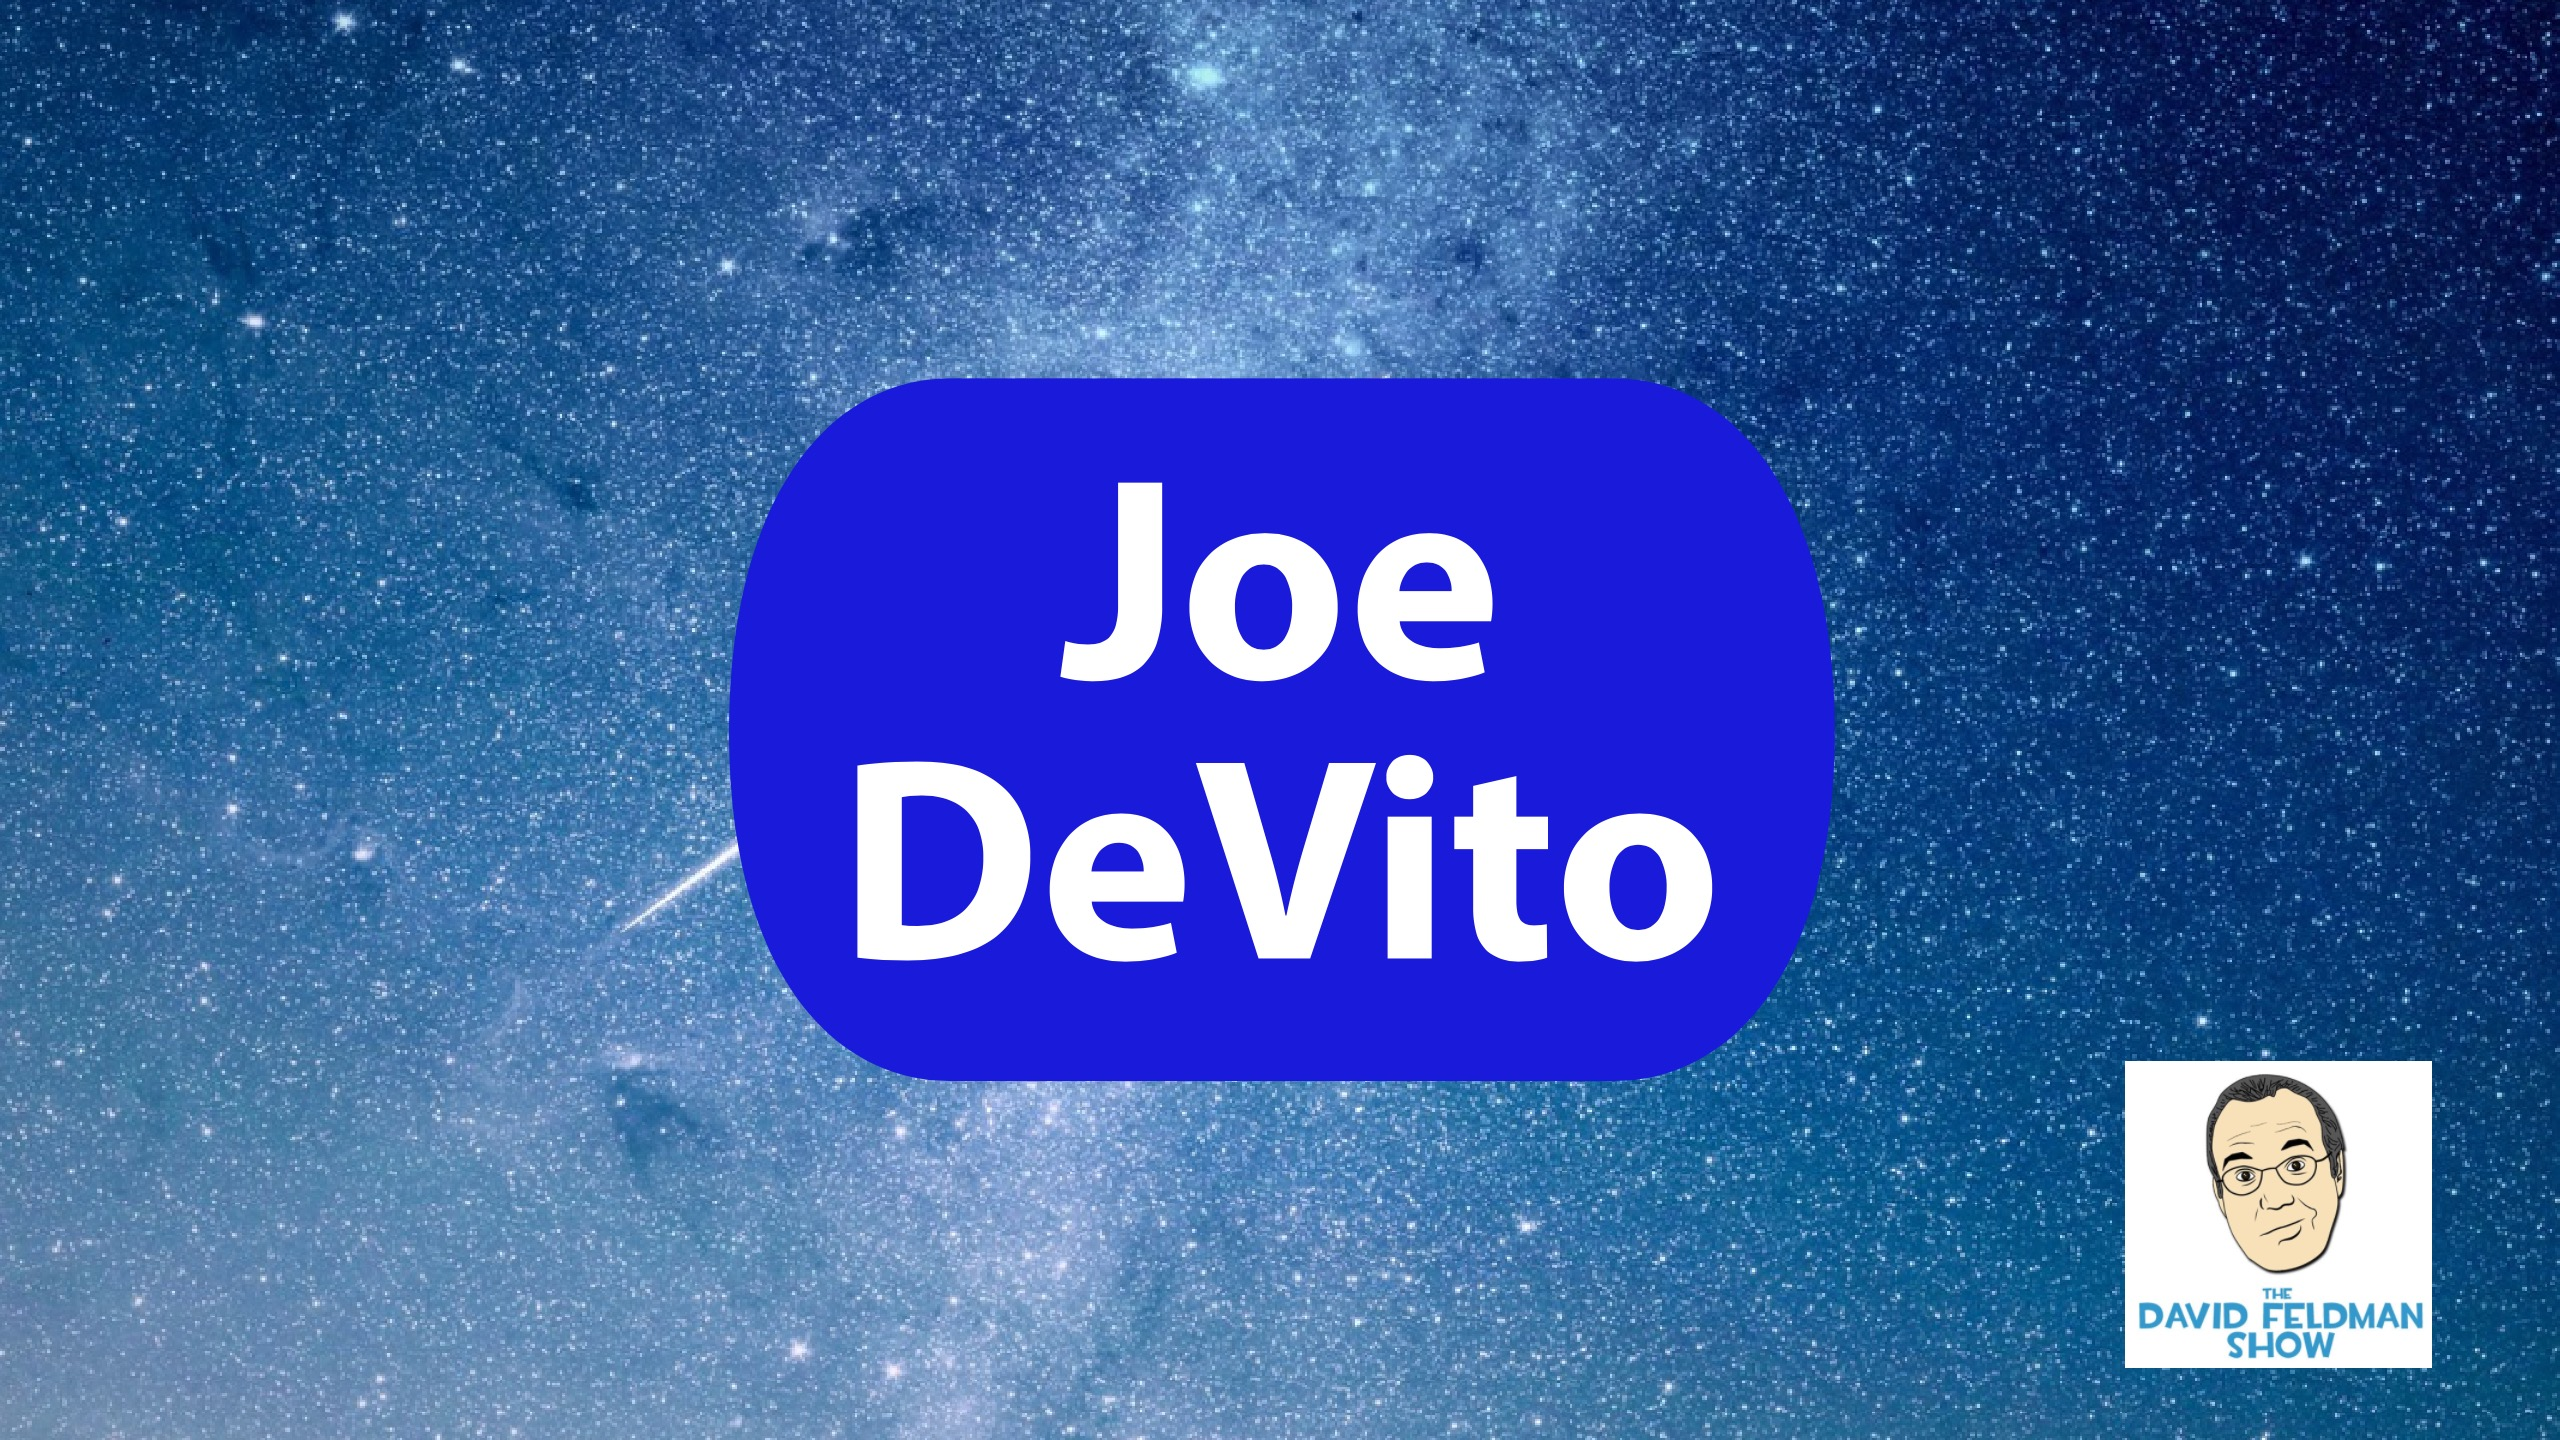 Joe DeVito Bombs in England